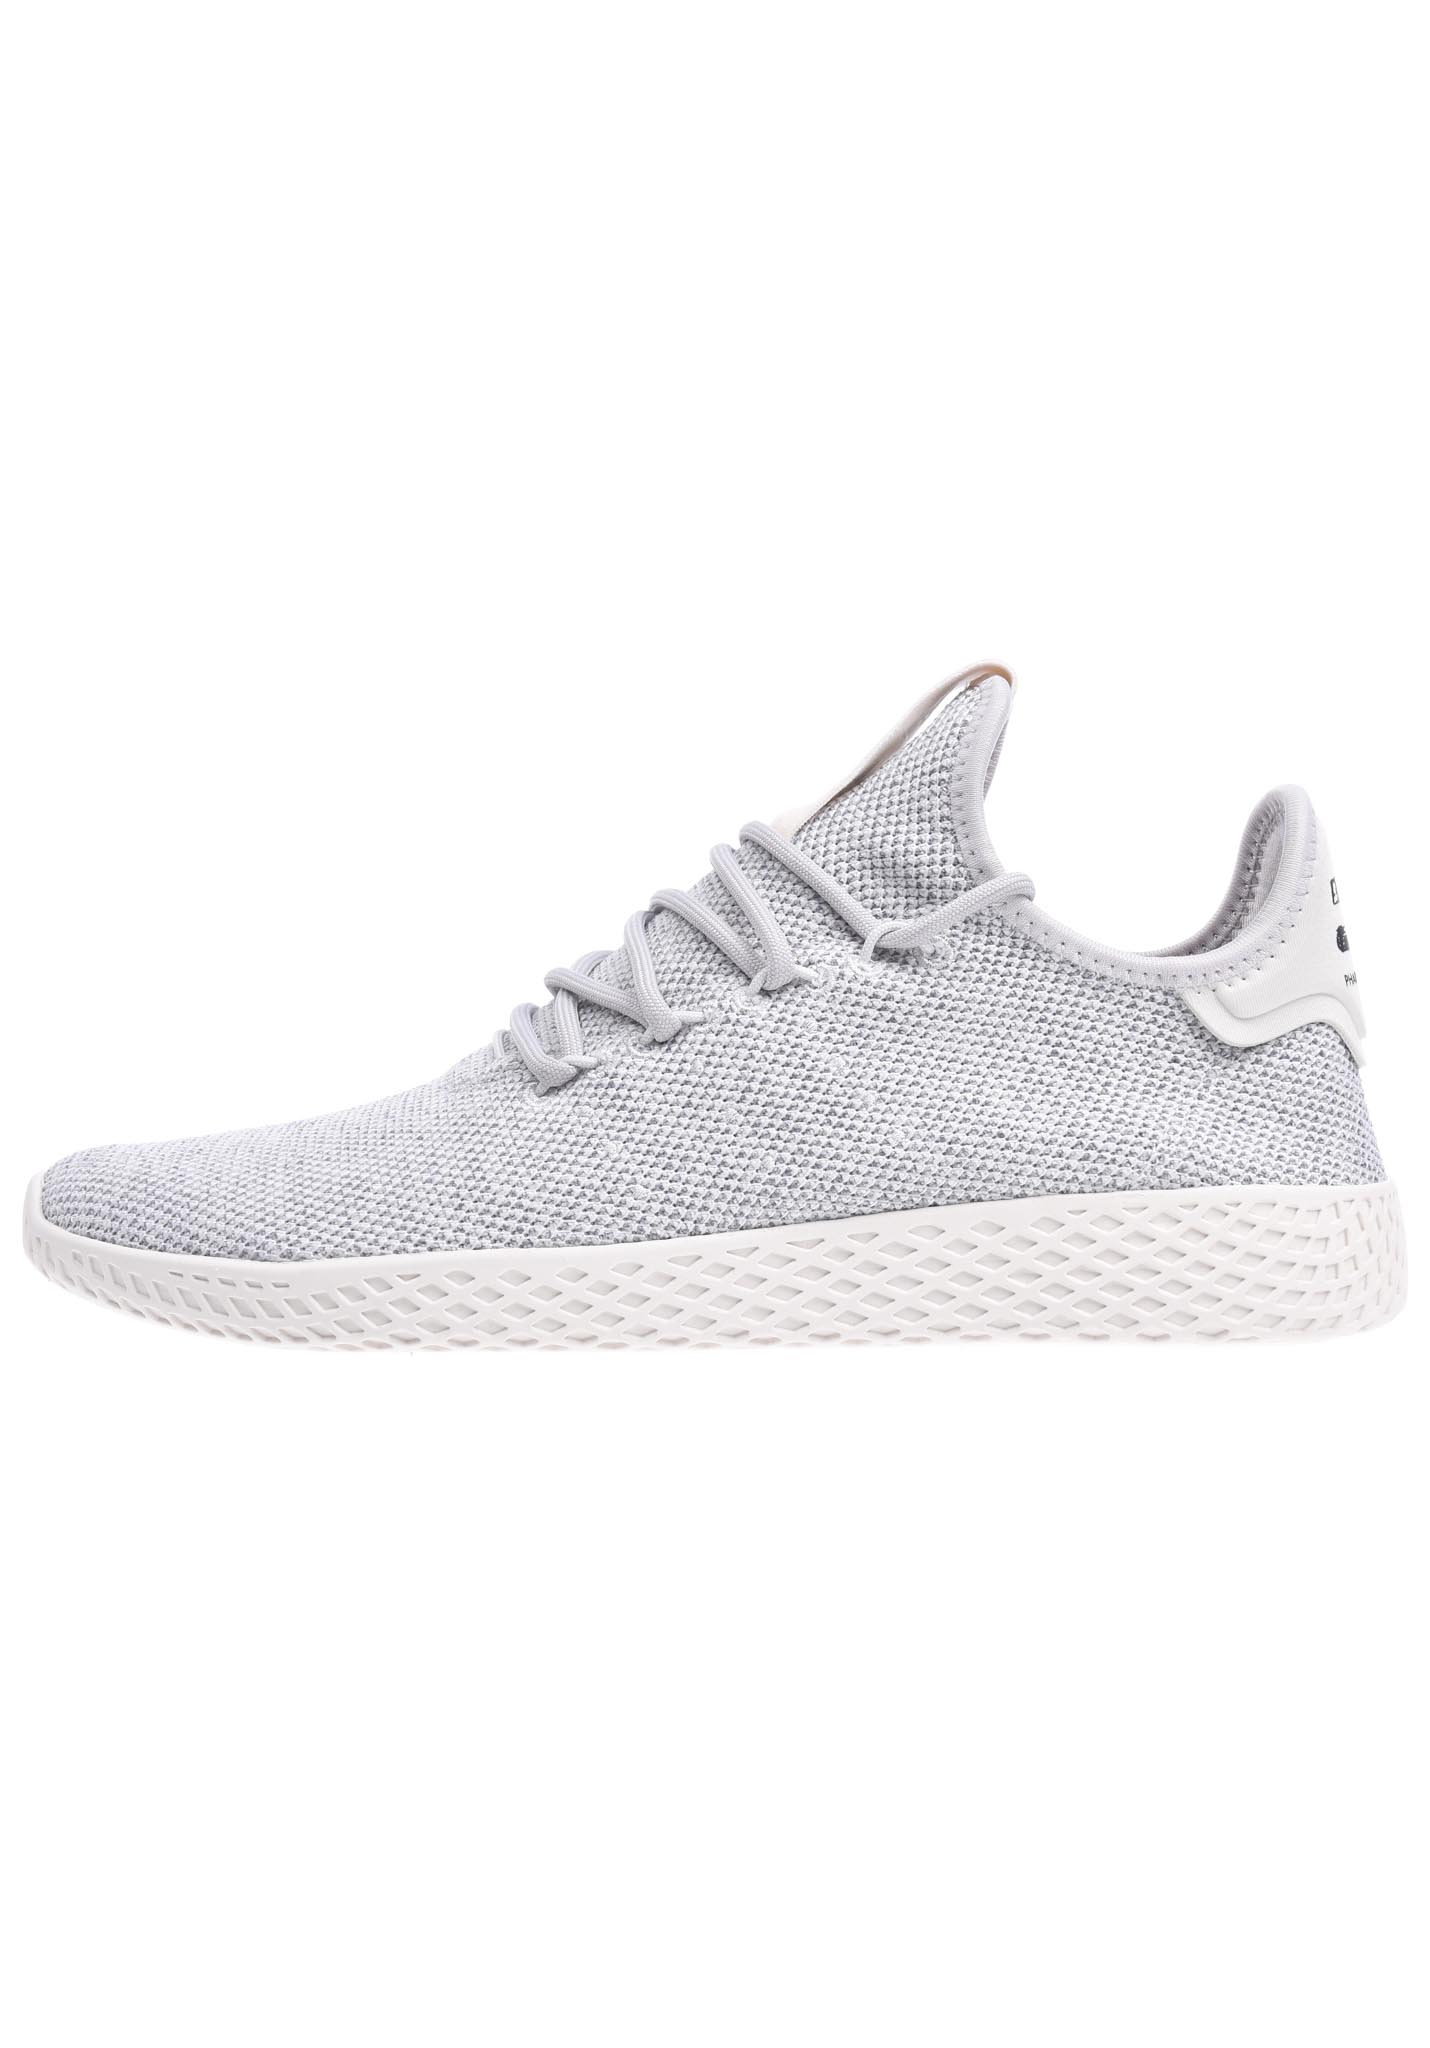 1faa8476332 ADIDAS ORIGINALS Pharrell Williams Tennis Hu - Sneakers voor Heren - Grijs  - Planet Sports